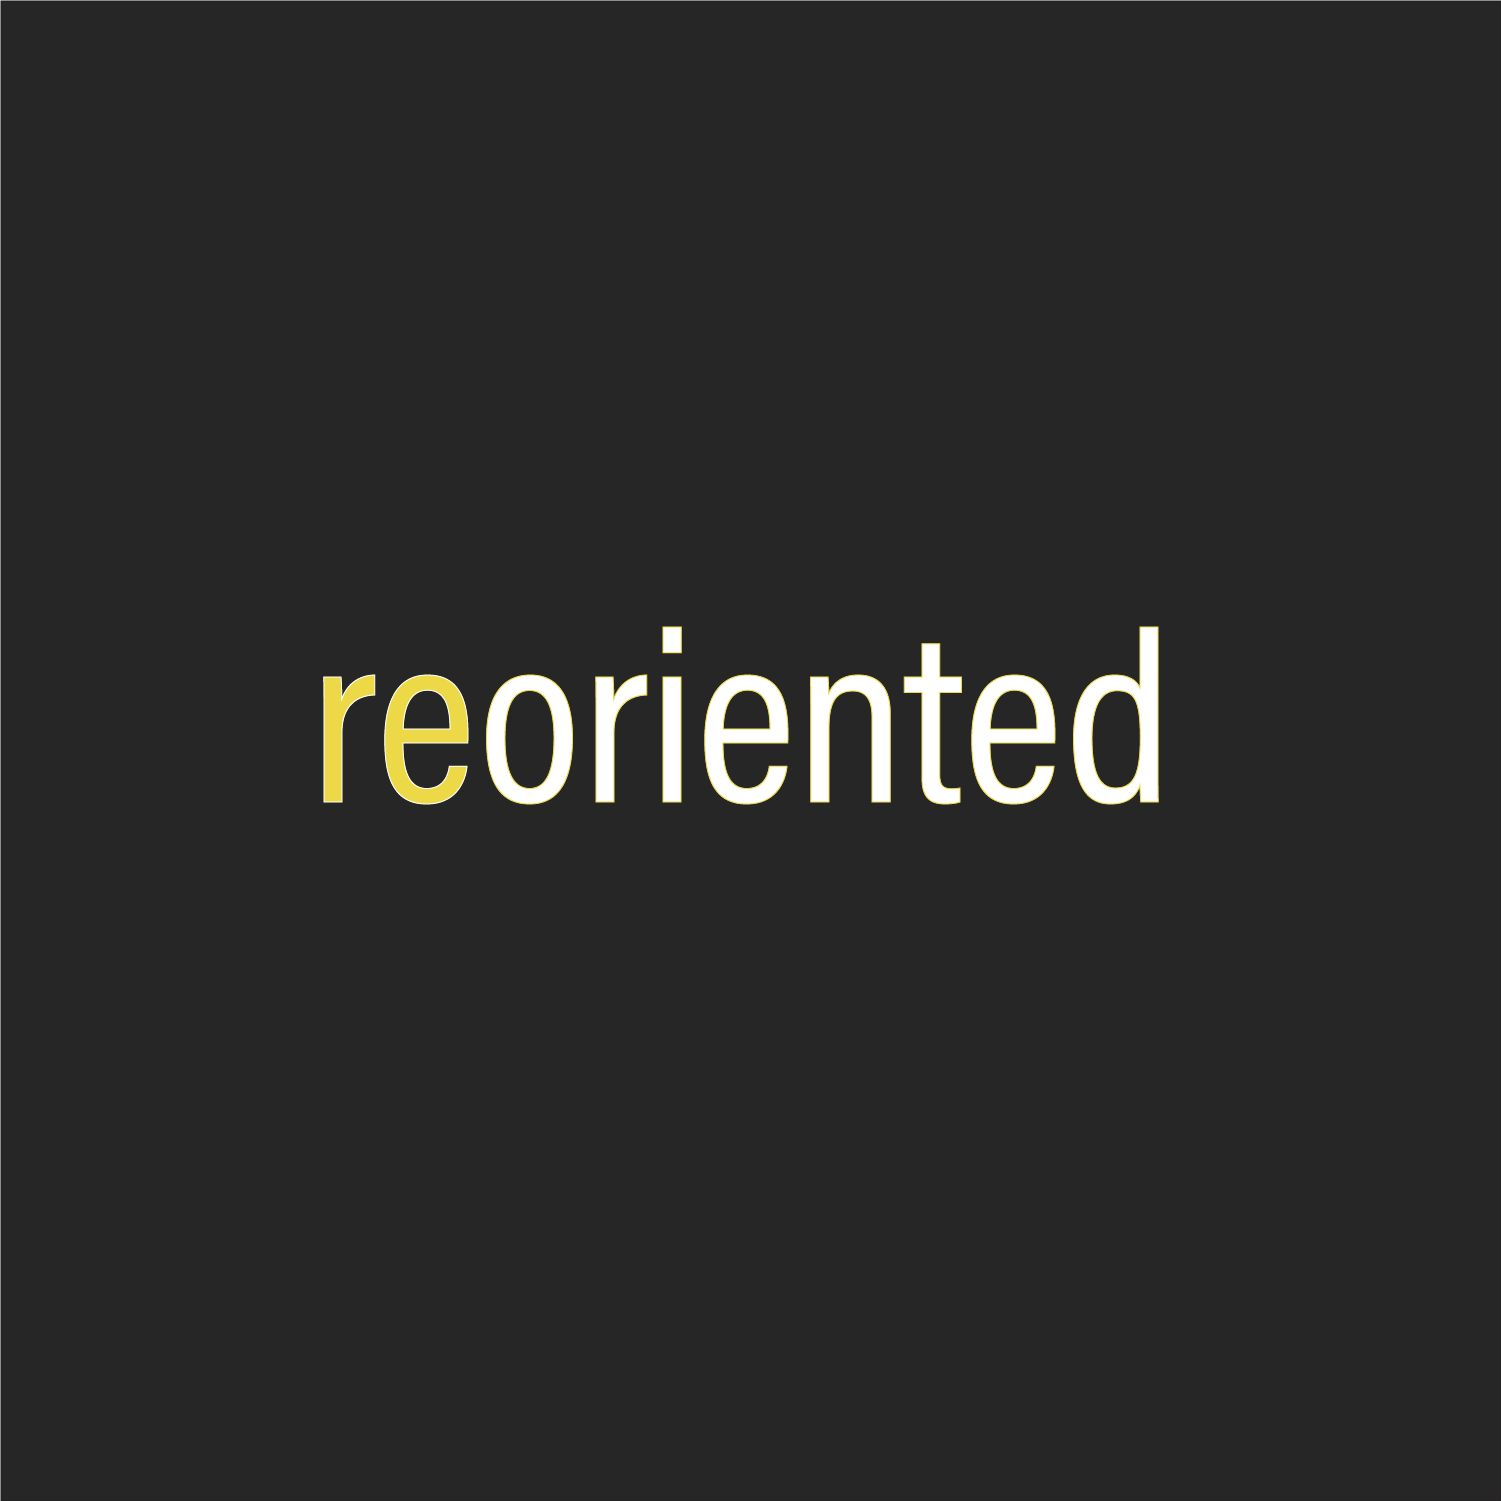 Reoriented